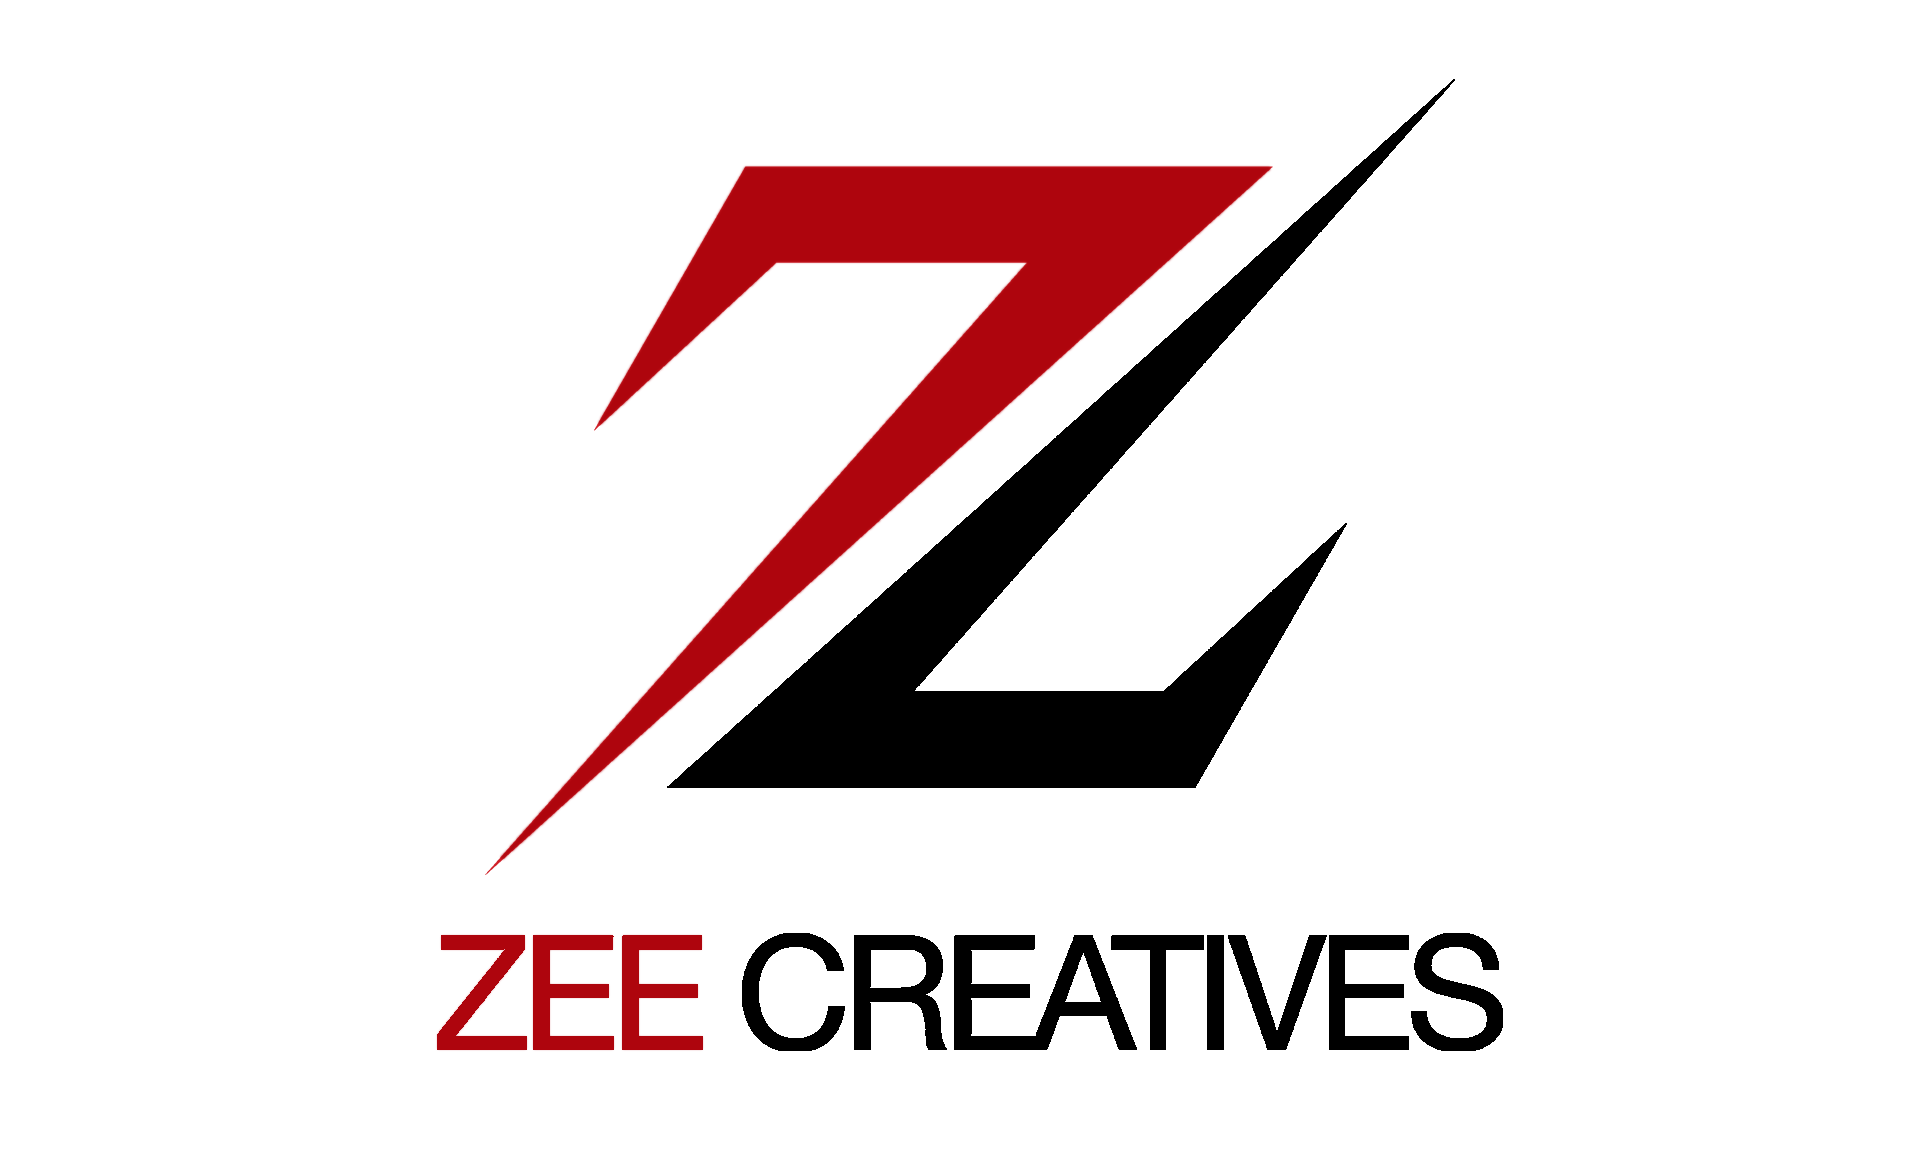 Zee creatives logo